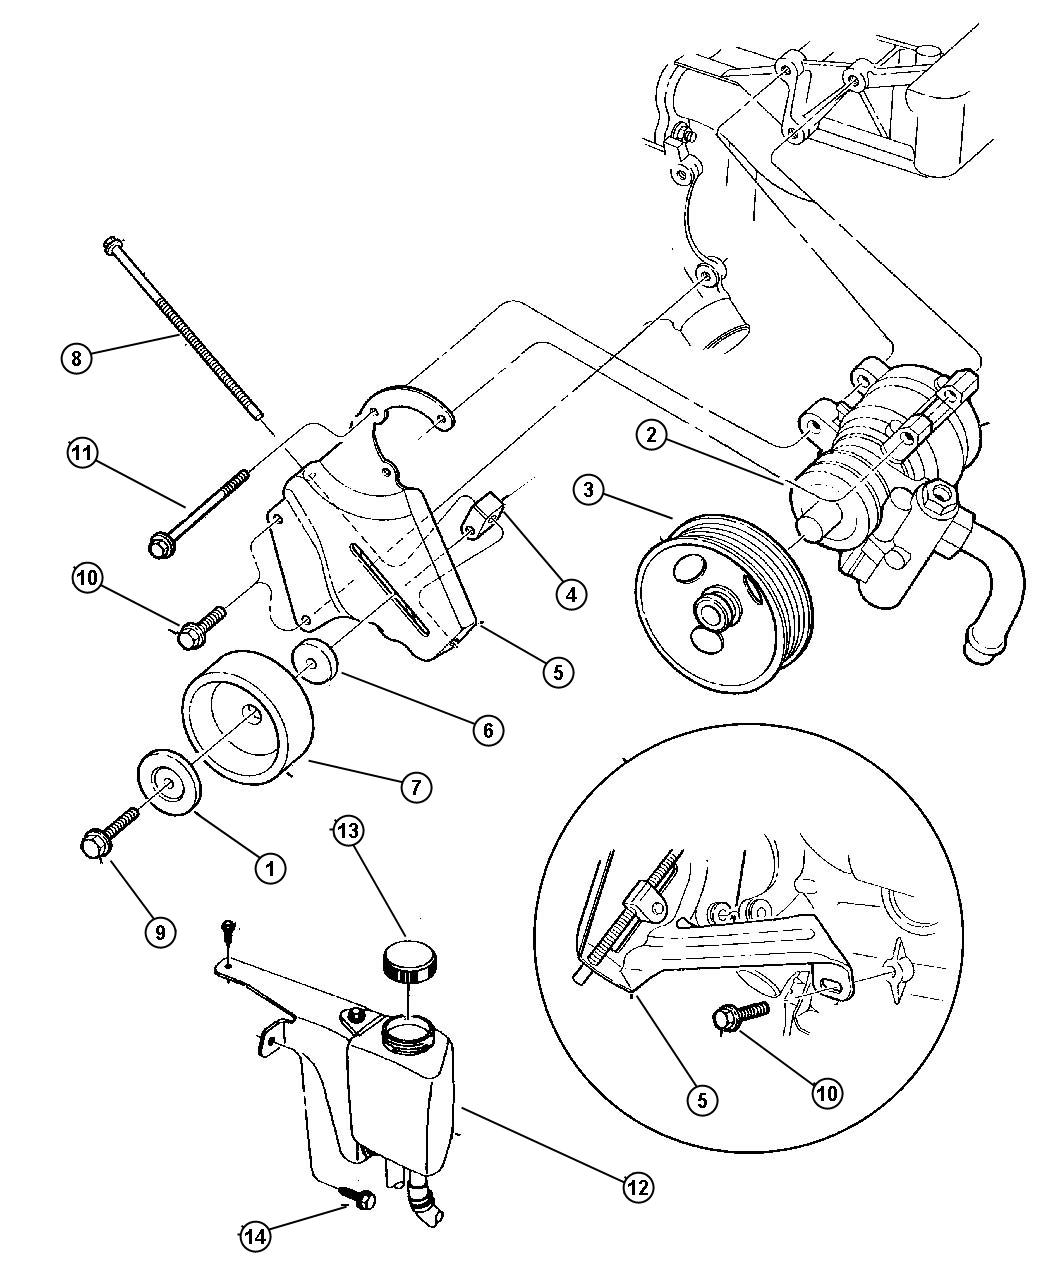 Jeep Wrangler Bolt Adjusting Bracket